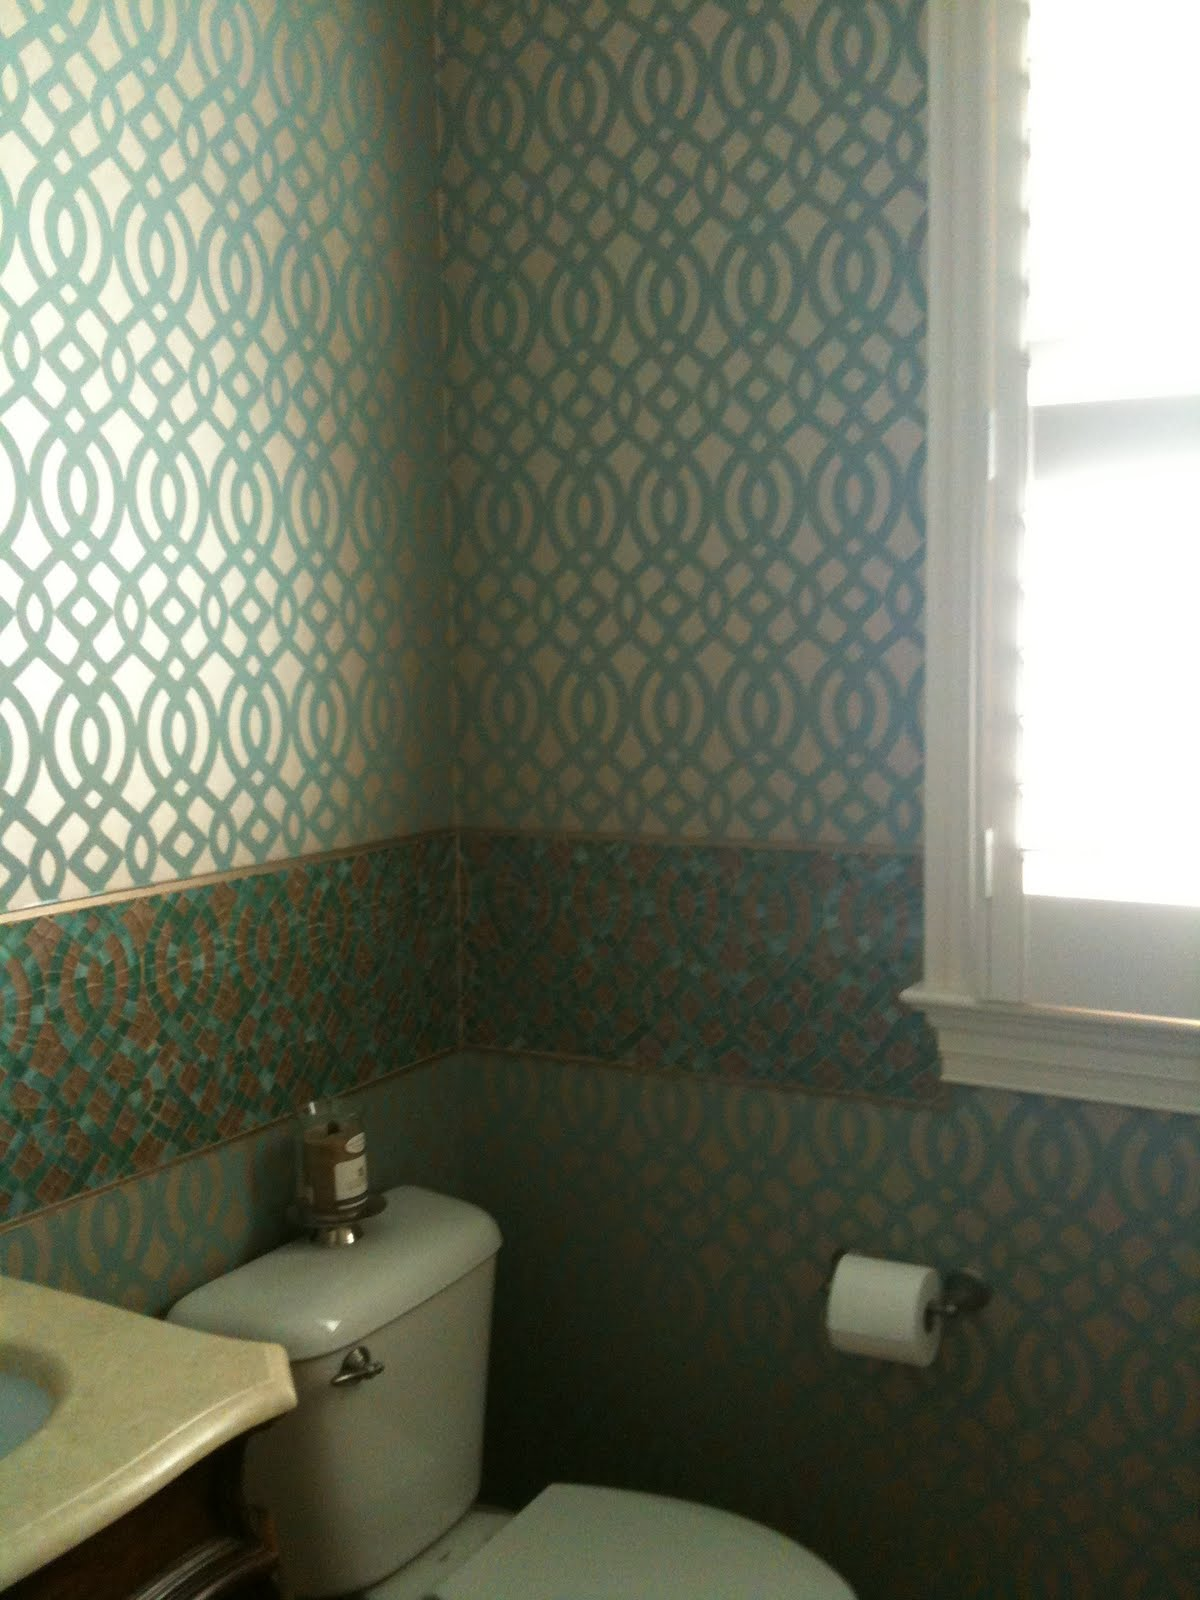 The BEFORE/DURING/AFTER of the transformed powder room shows a custom  backsplash that was designed from the wallcovering that was selected.